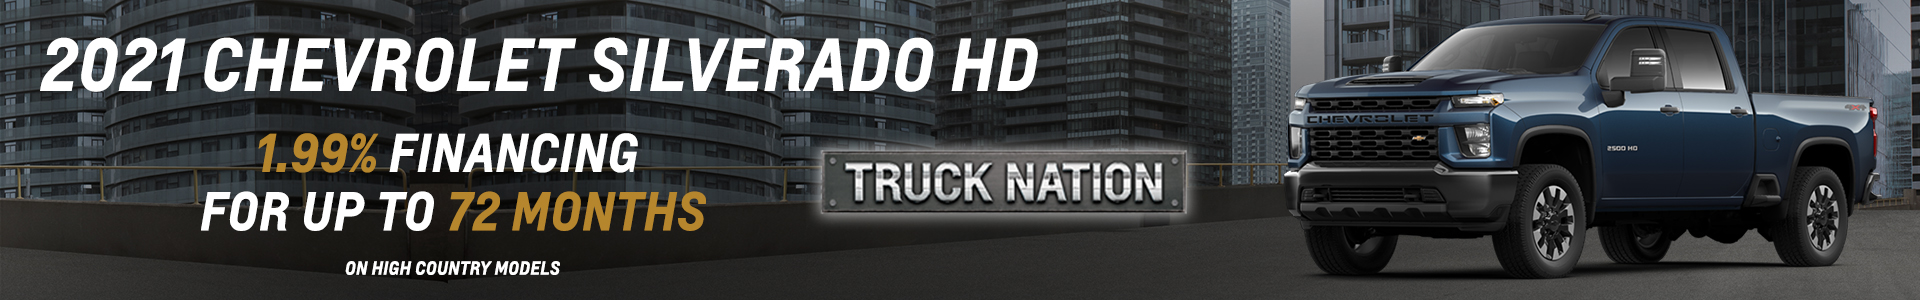 2021 Chevrolet Silverado HD - 1.99% Financing for up to 72 months